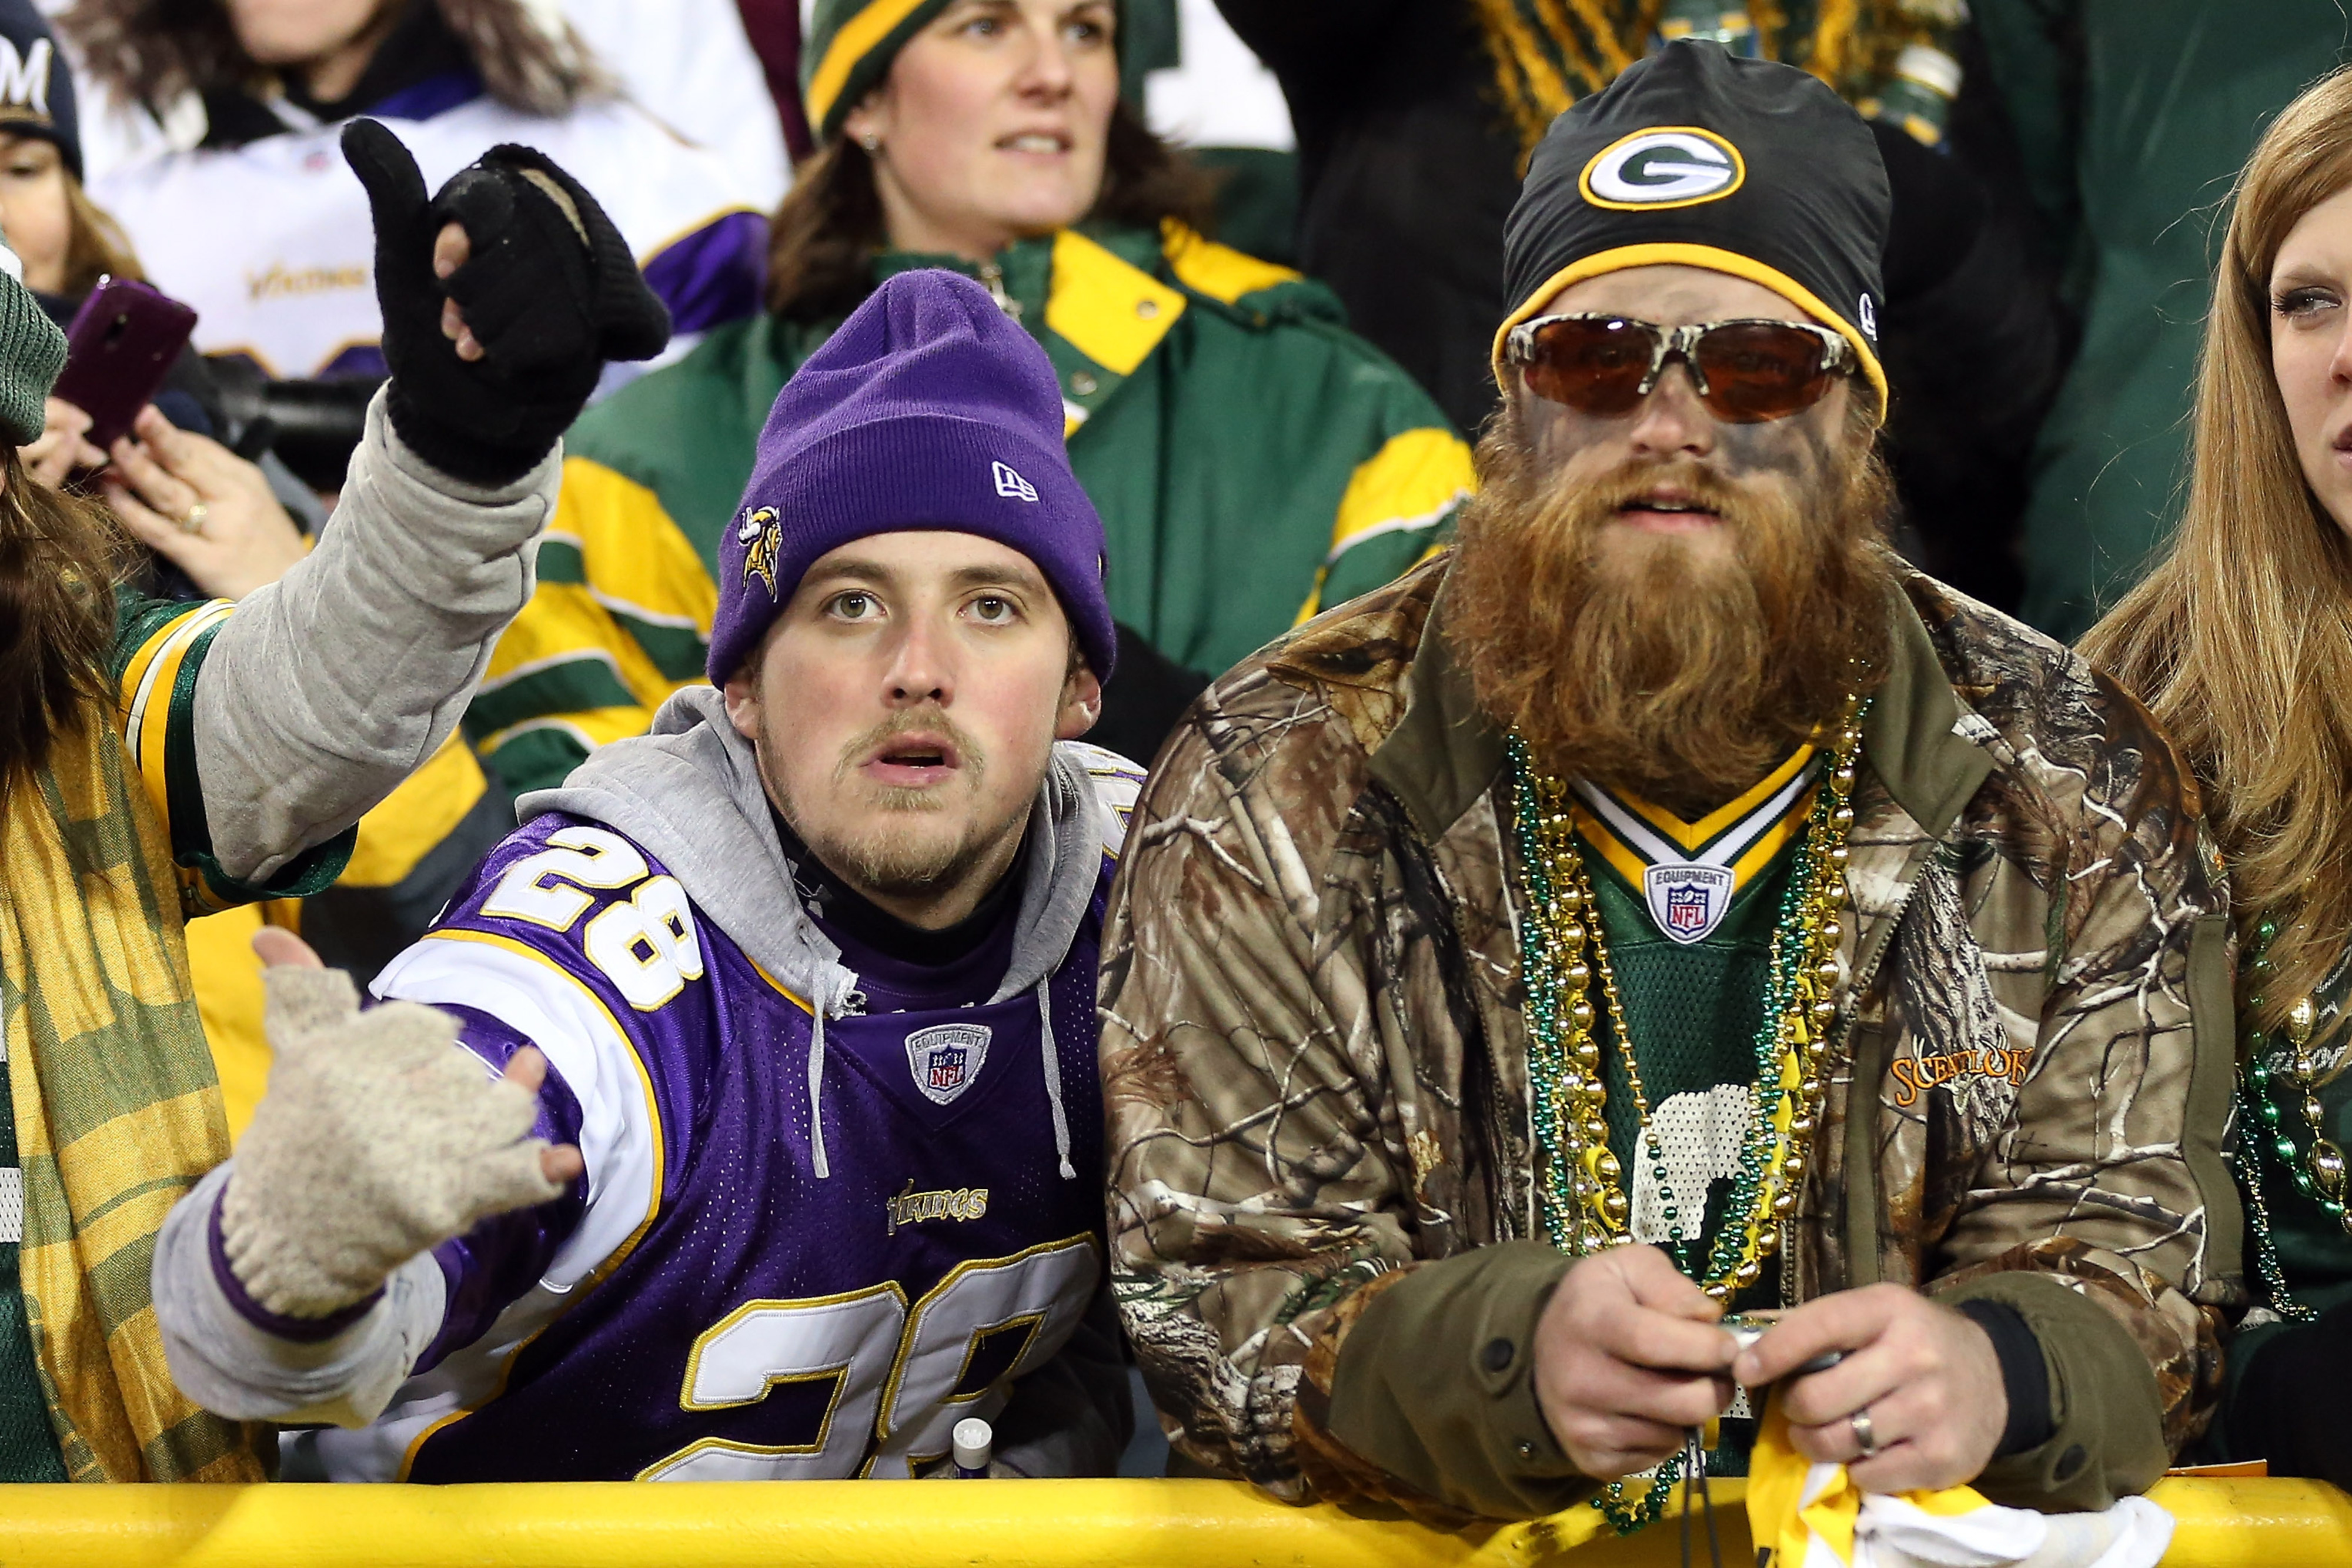 We will neither confirm nor deny whether these people are actually Eric and Tex.